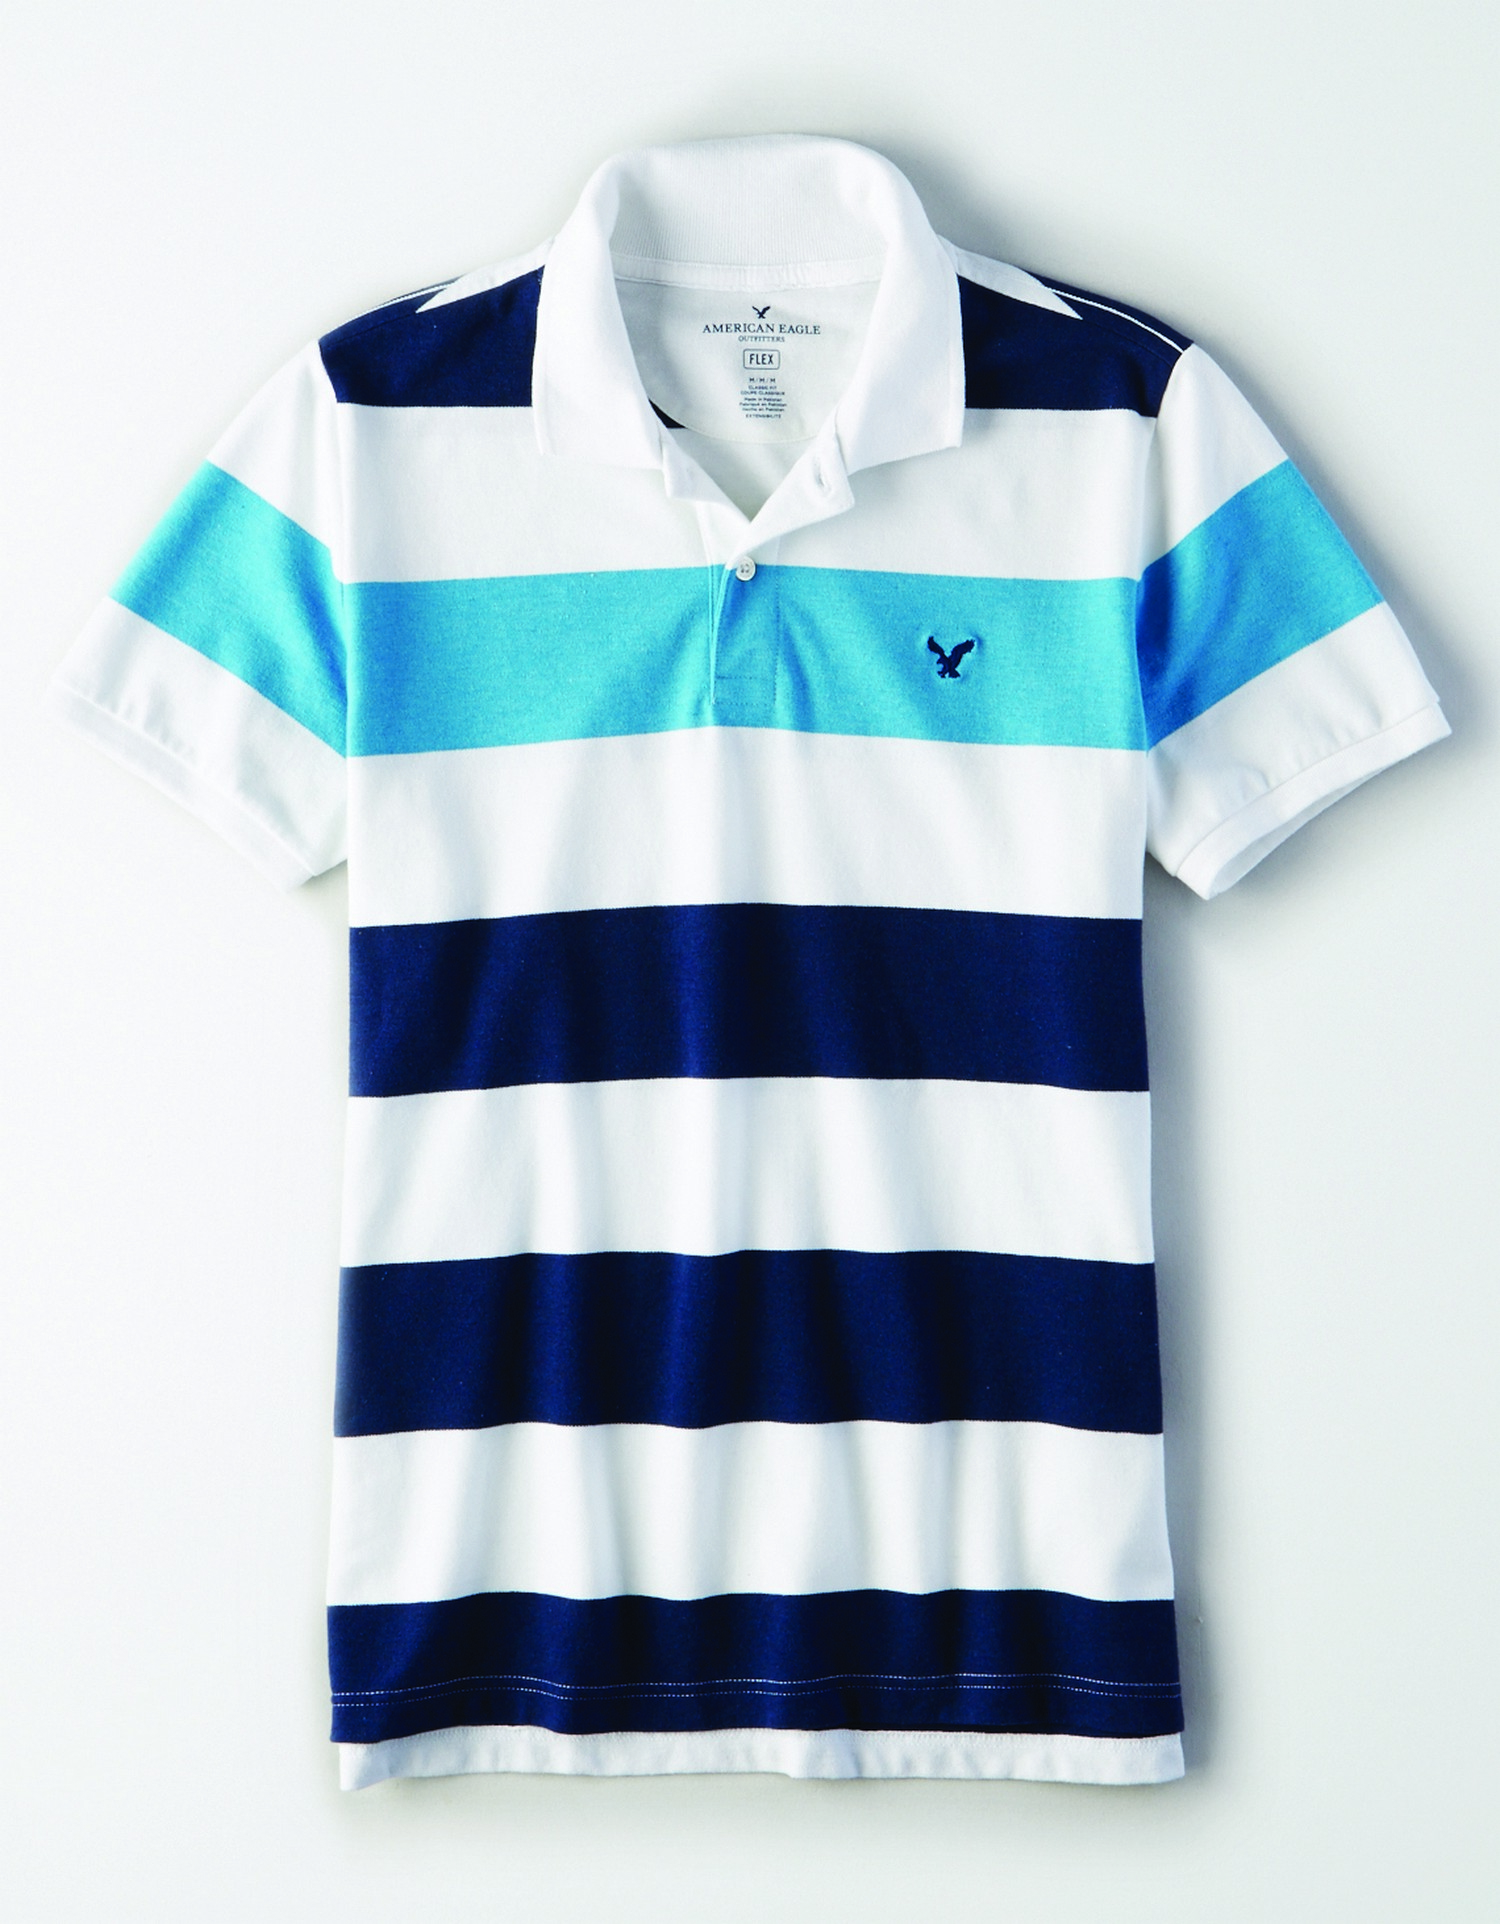 AE - INTL - Apparel - M - SF Stripe Polo - White, navy blue, and light blue horizontal thick stripes - navy blue embroidered eagle on left chest KS *Tracked